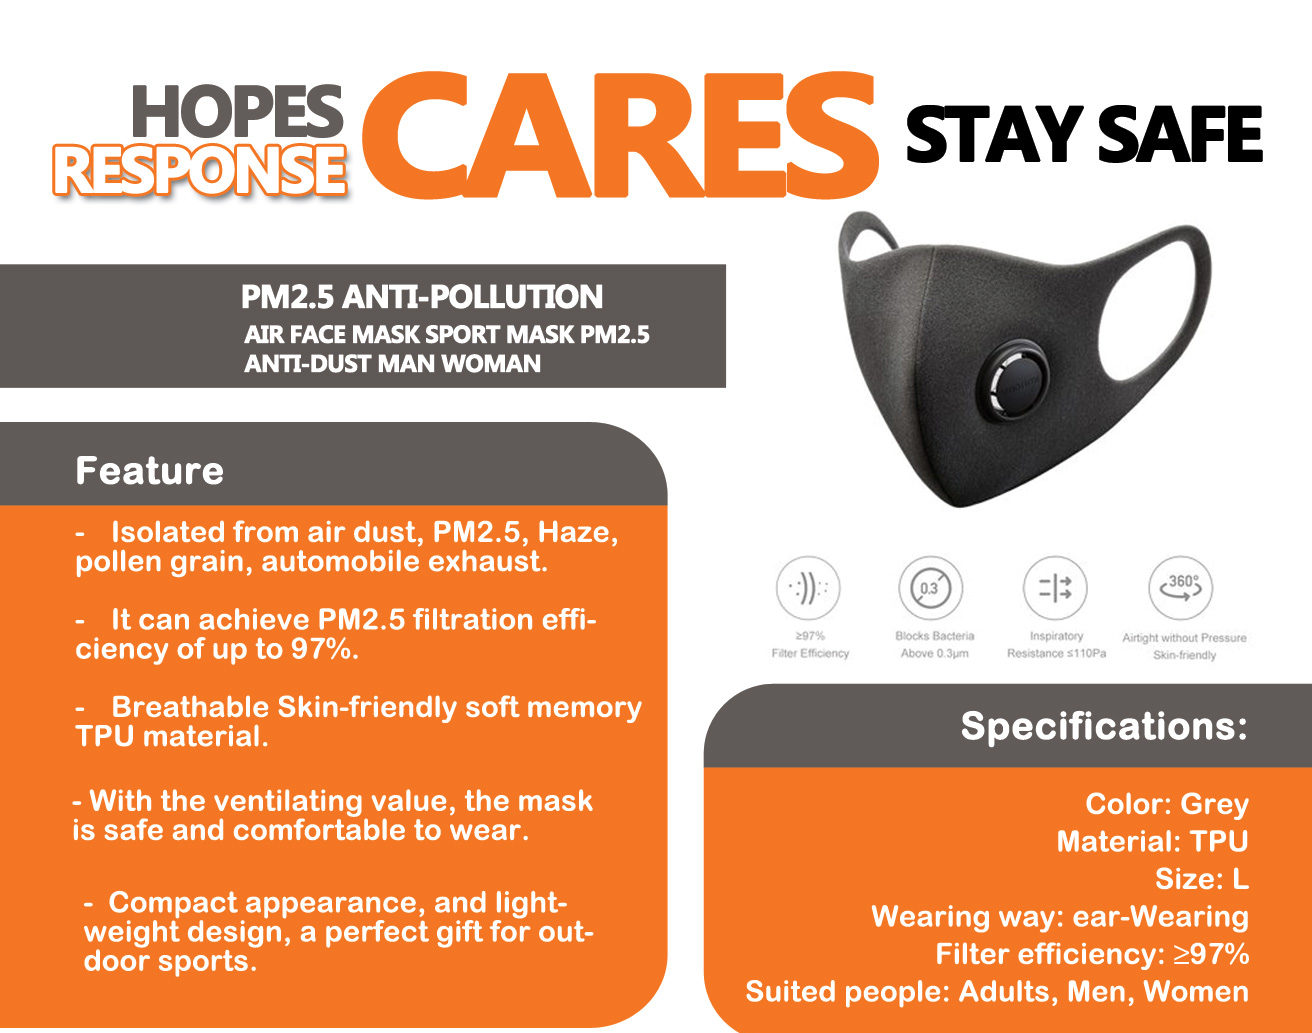 Hopes Response | PPE PPE Everyday Carry Kit and information | facemasks